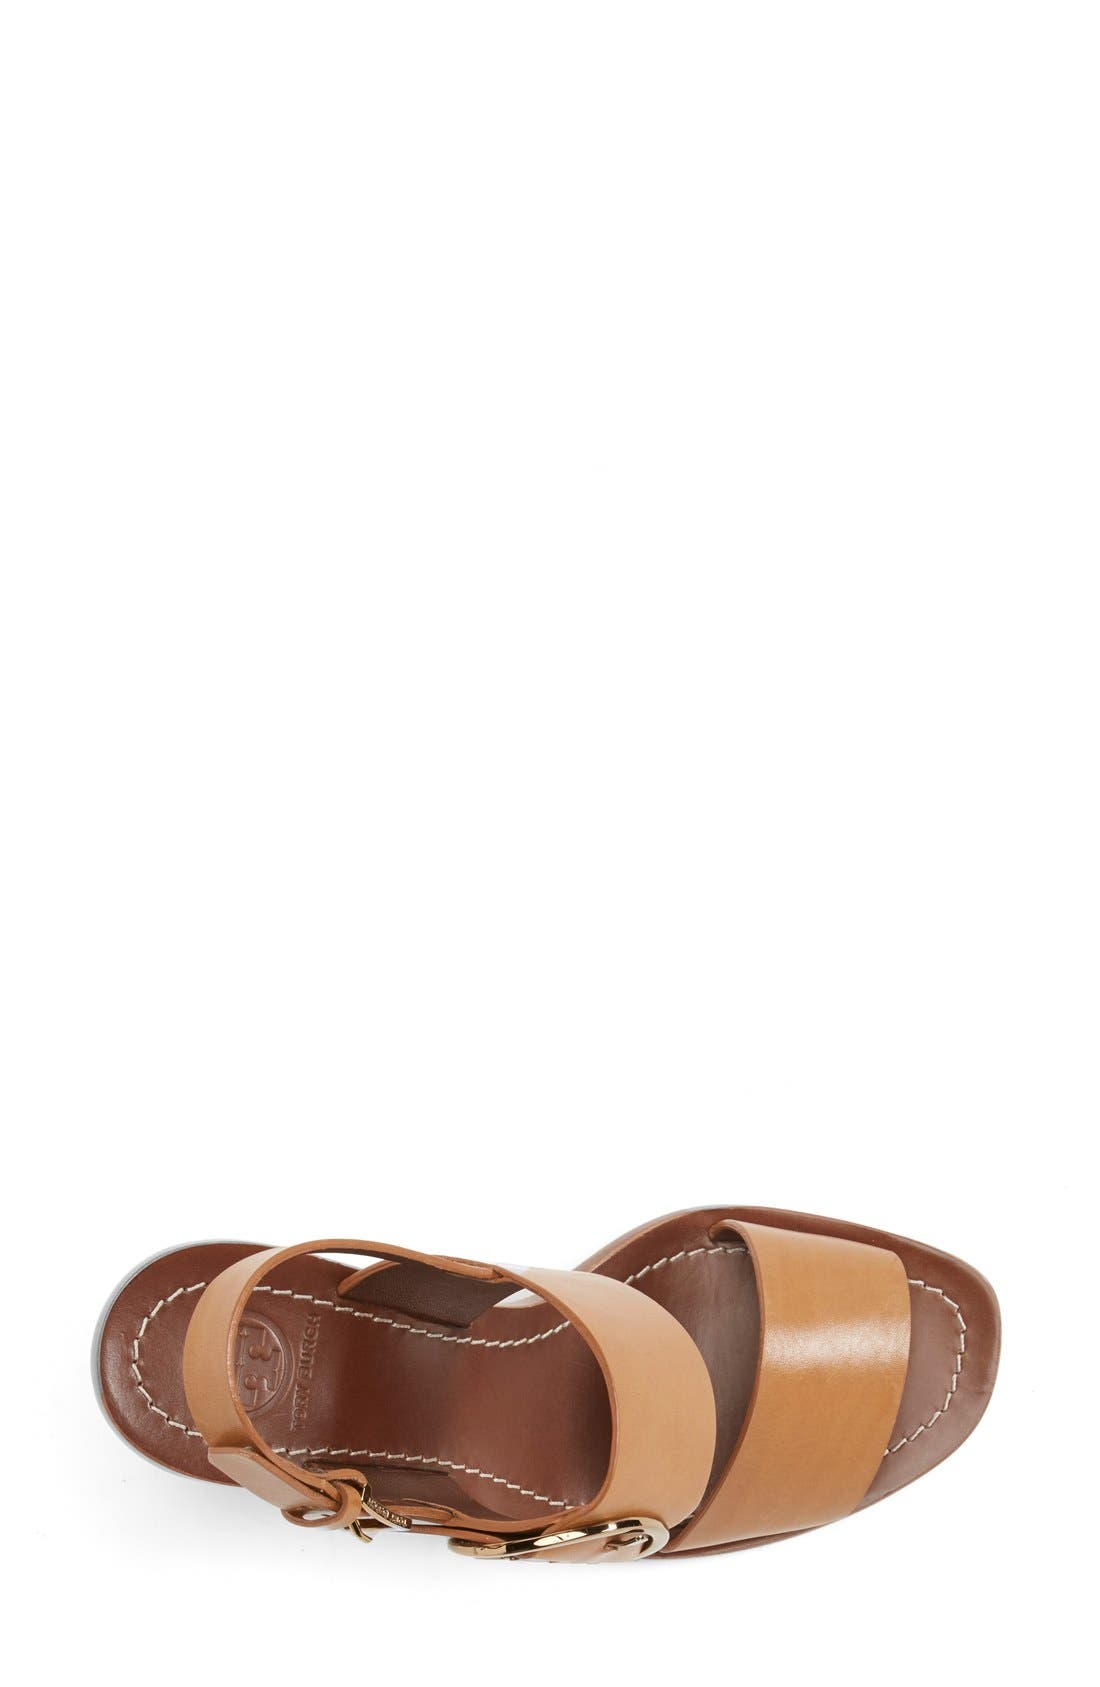 Alternate Image 3  - Tory Burch 'Thames' Sandal (Women)